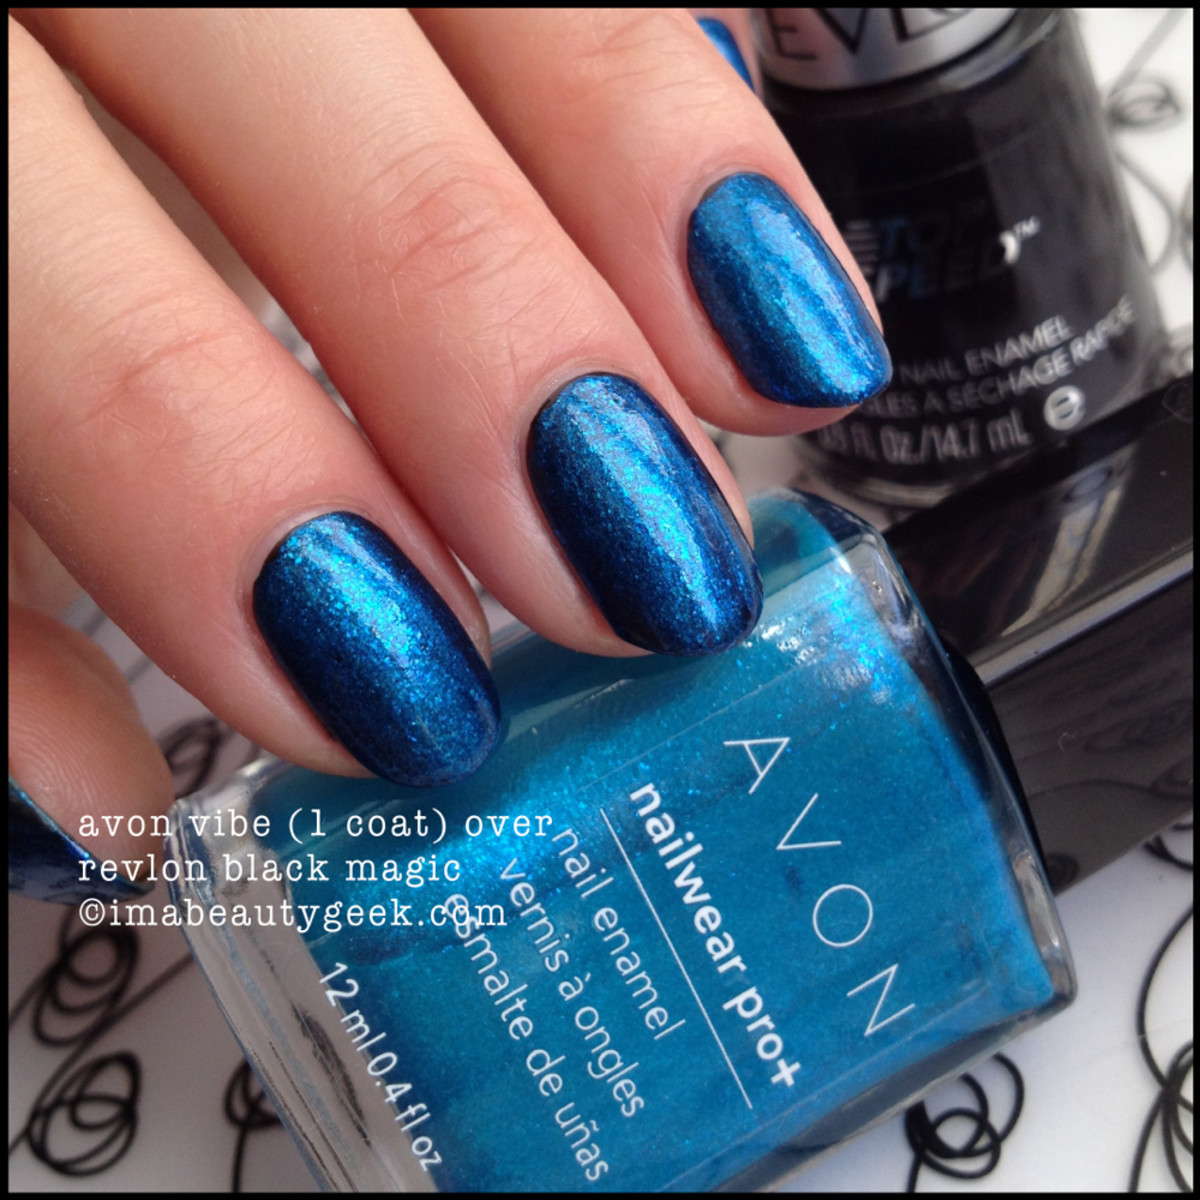 Avon Electric Shades Vibe over Revlon Black Magic